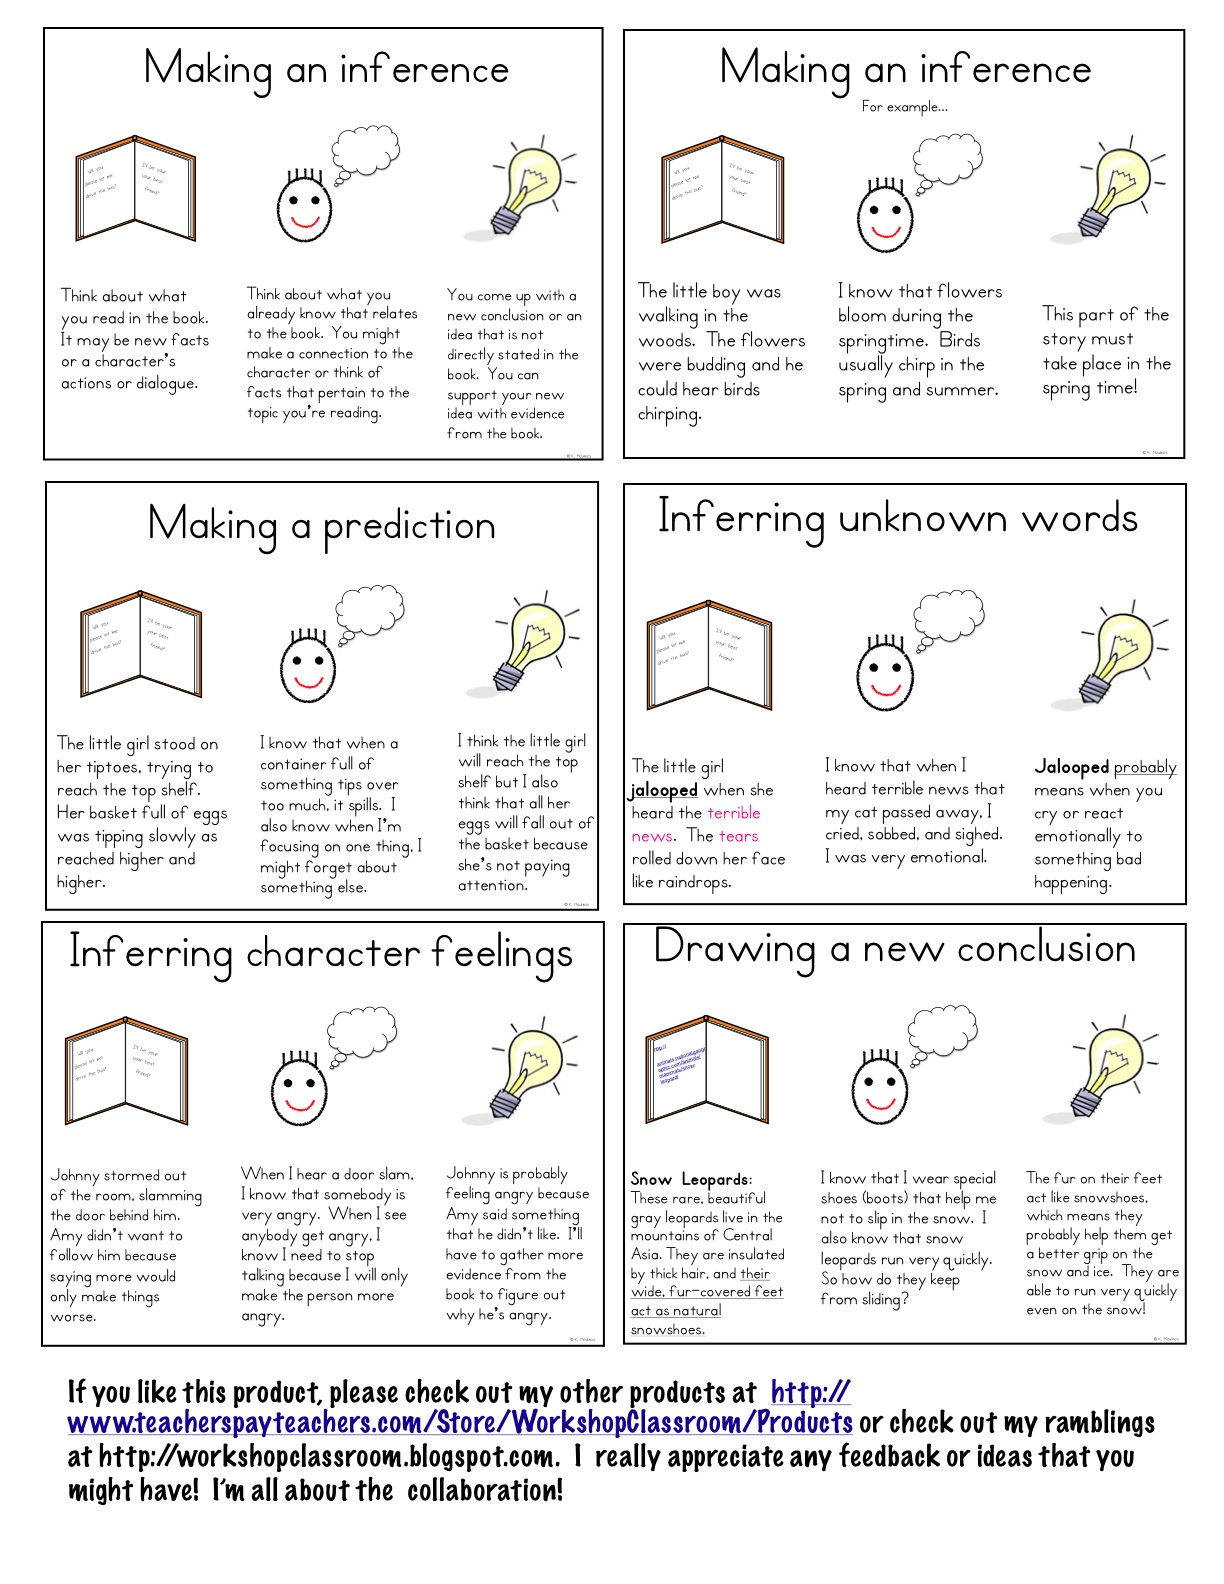 Workshop Classroom: Making inferences mini lessons